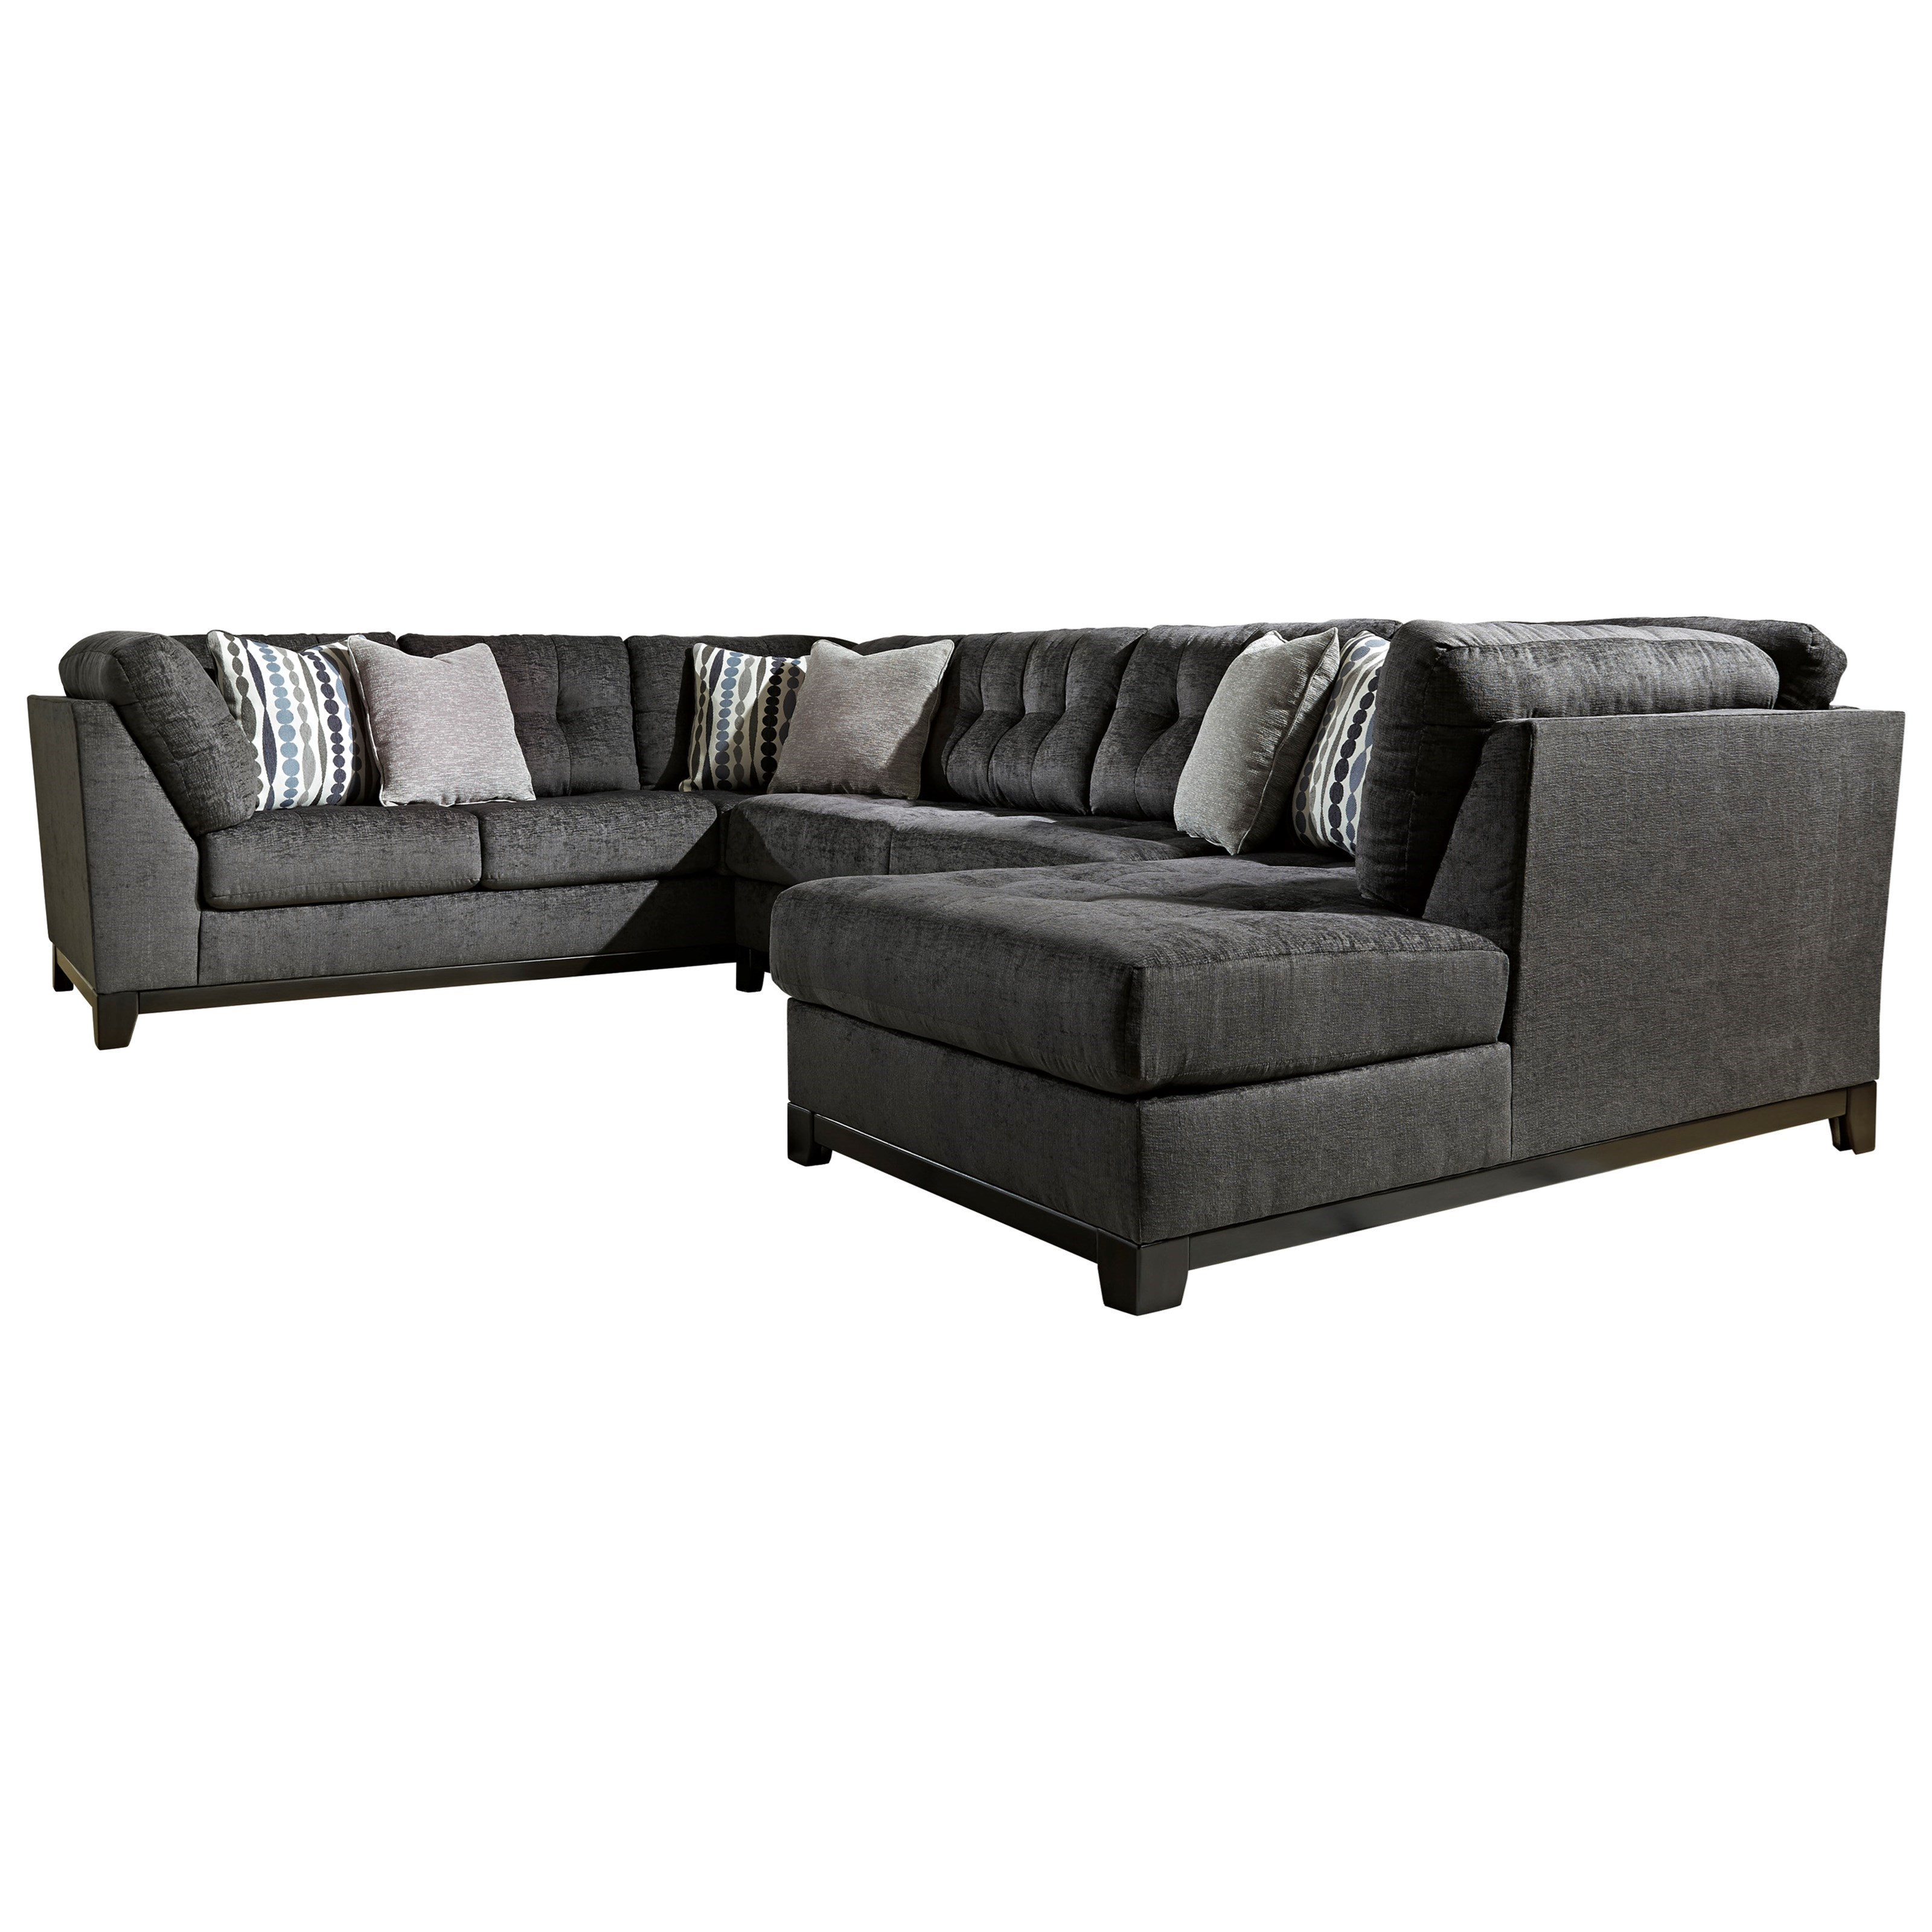 Ashley Furniture Reidshire Sectional Sofa With Right Side Chaise | Miskelly  Furniture | Sectional Sofas